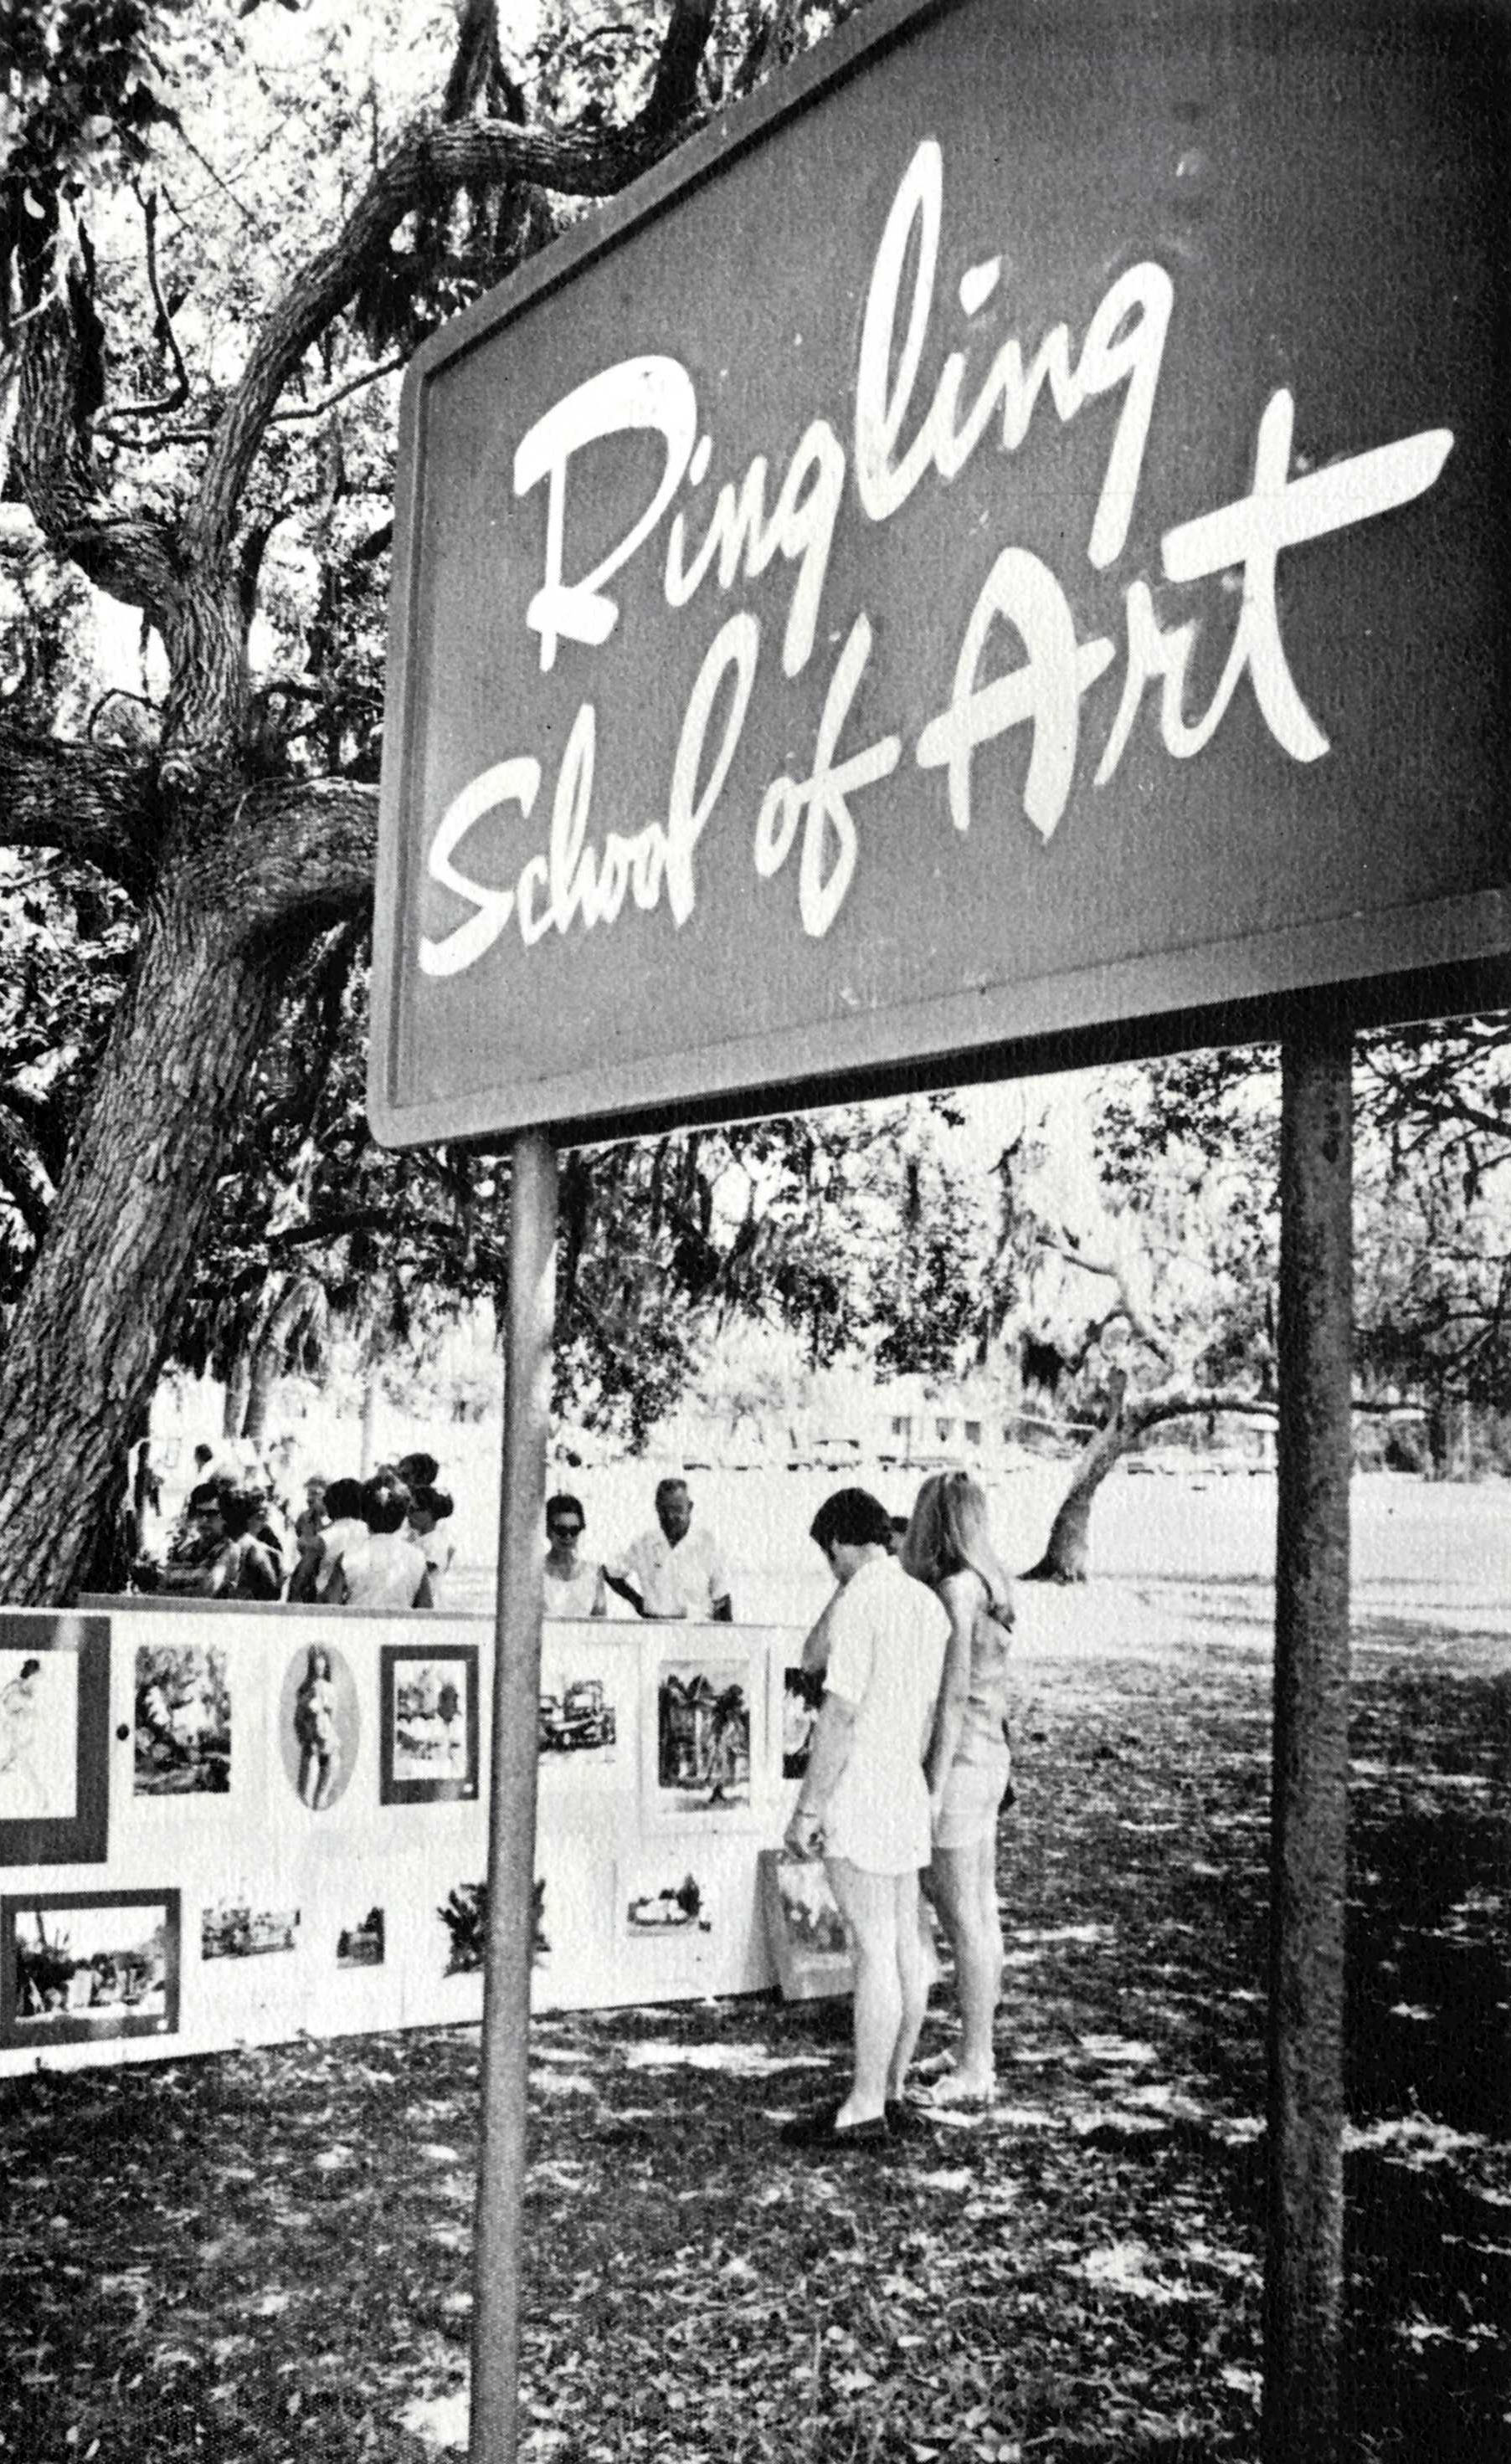 Photo of Ringling School of Art sign in front of annual student sidewalk art sale in 1970